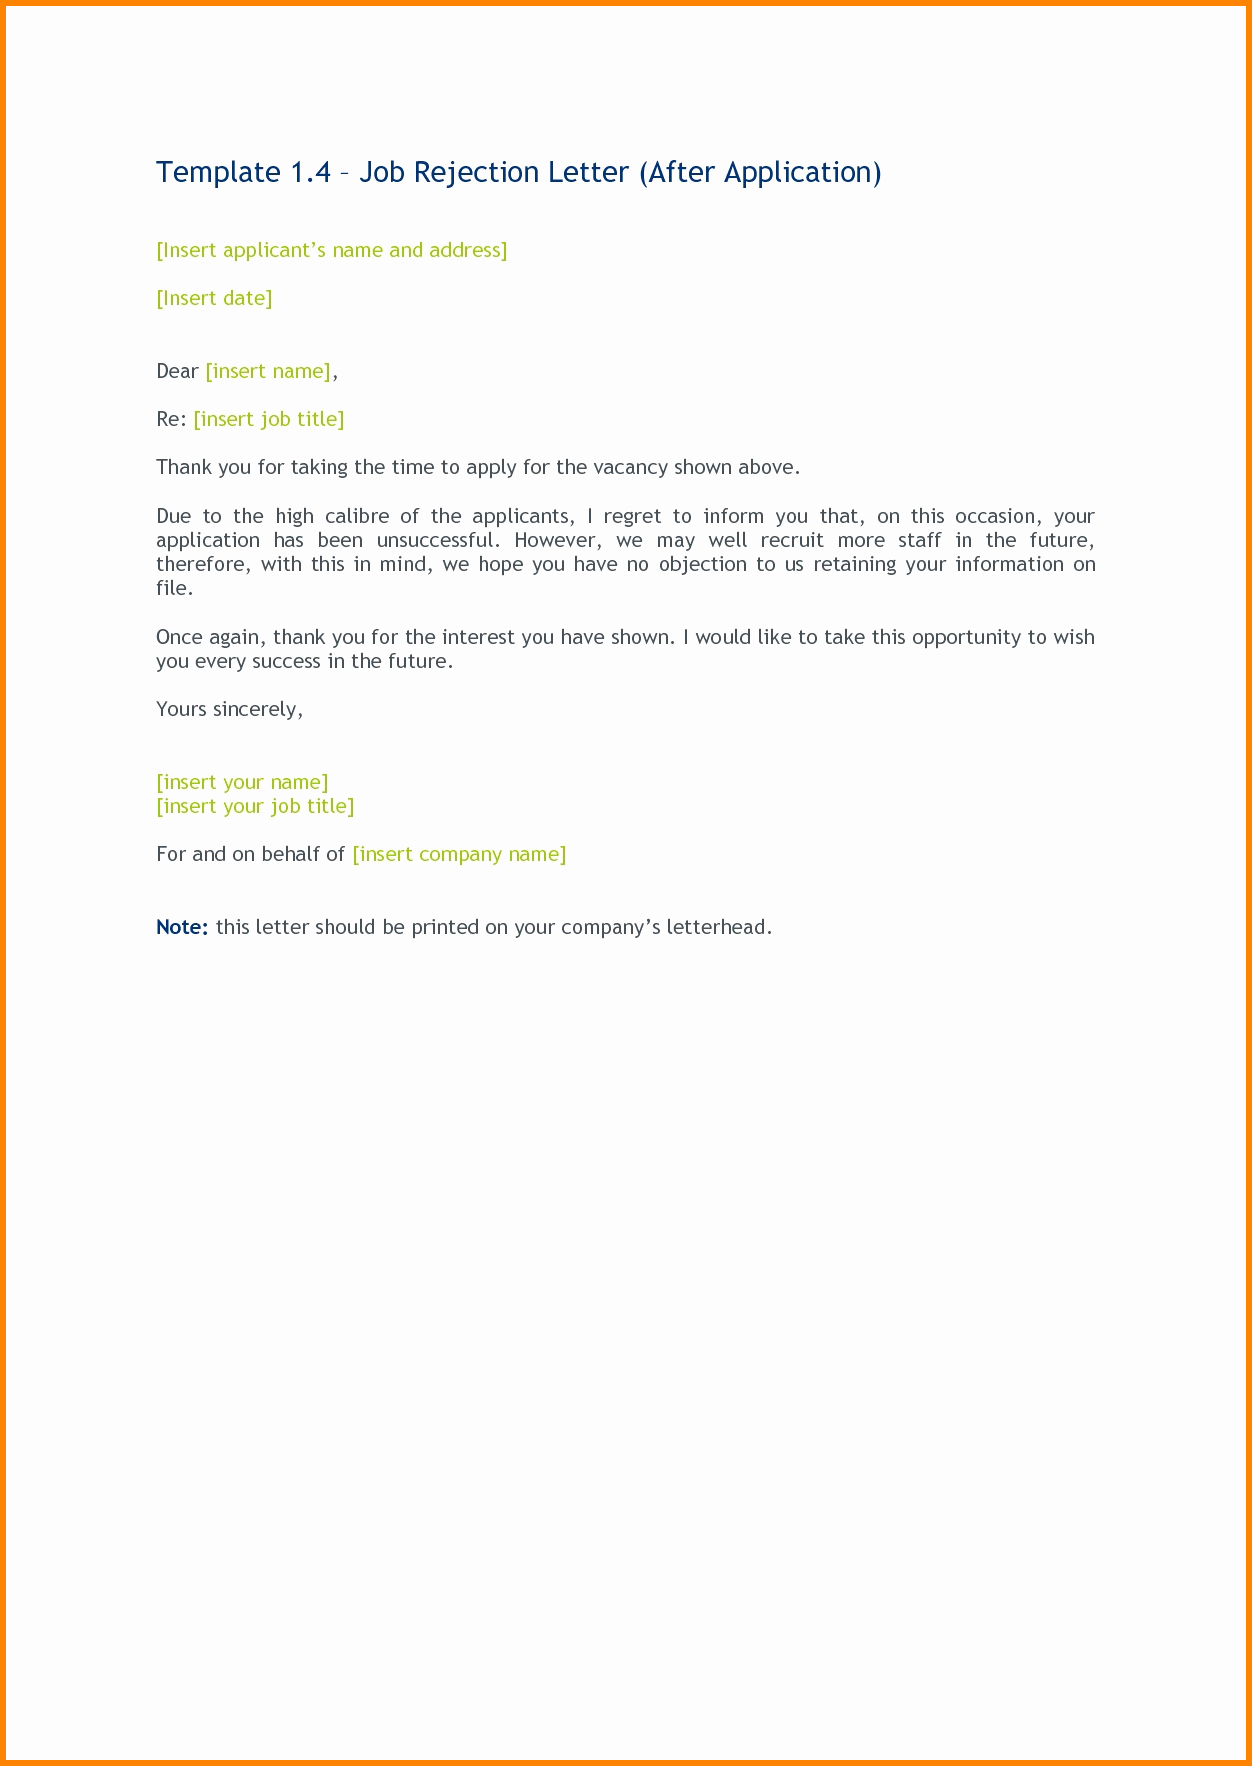 Application Rejection Letter Template Inspirational 5 Application Rejection Letter